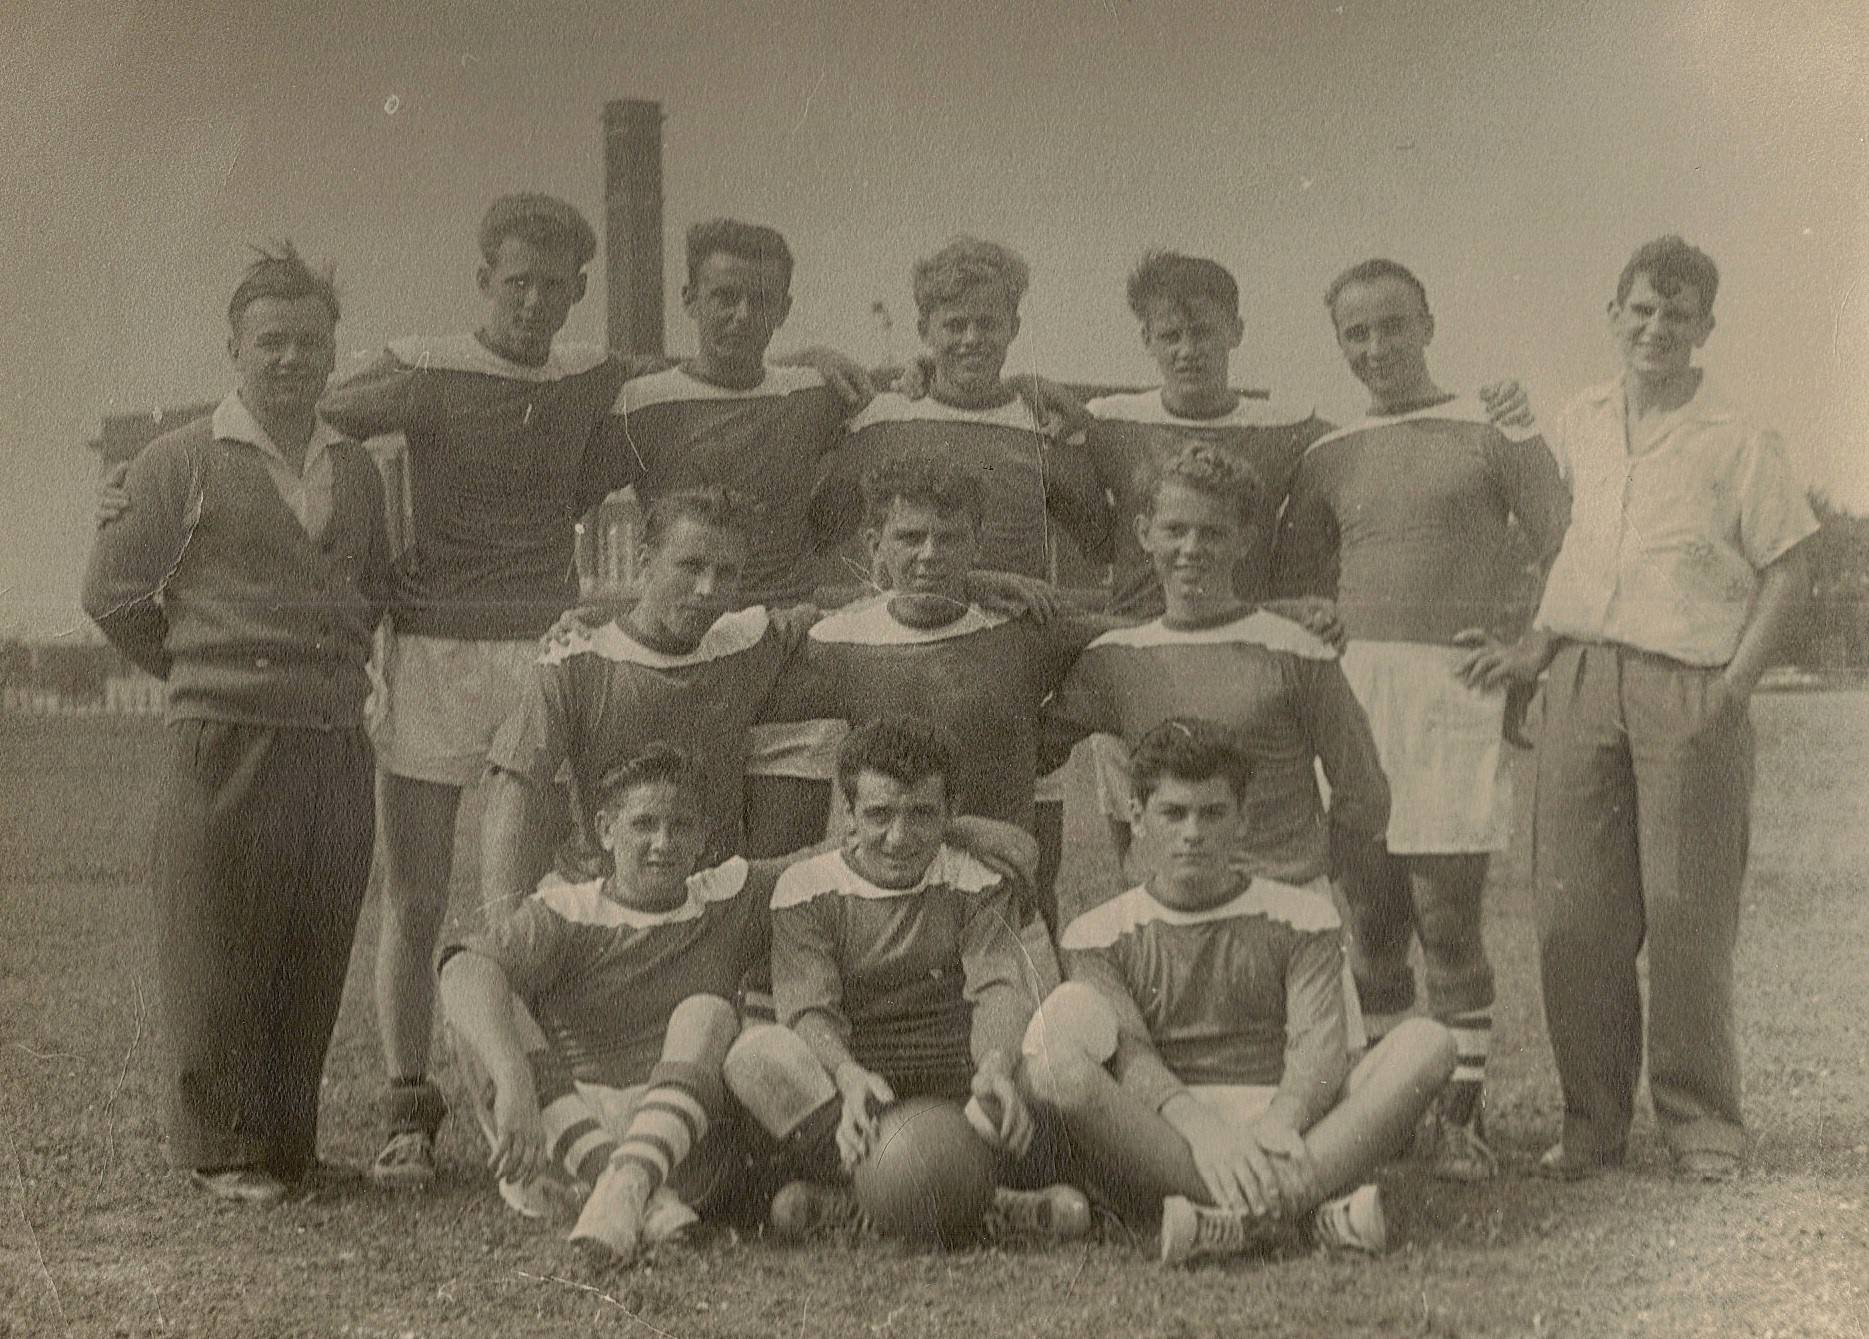 The first Green White soccer team from 1956. After spending about 25 years in Chicago, Green White moved to Mount Prospect in 1982.